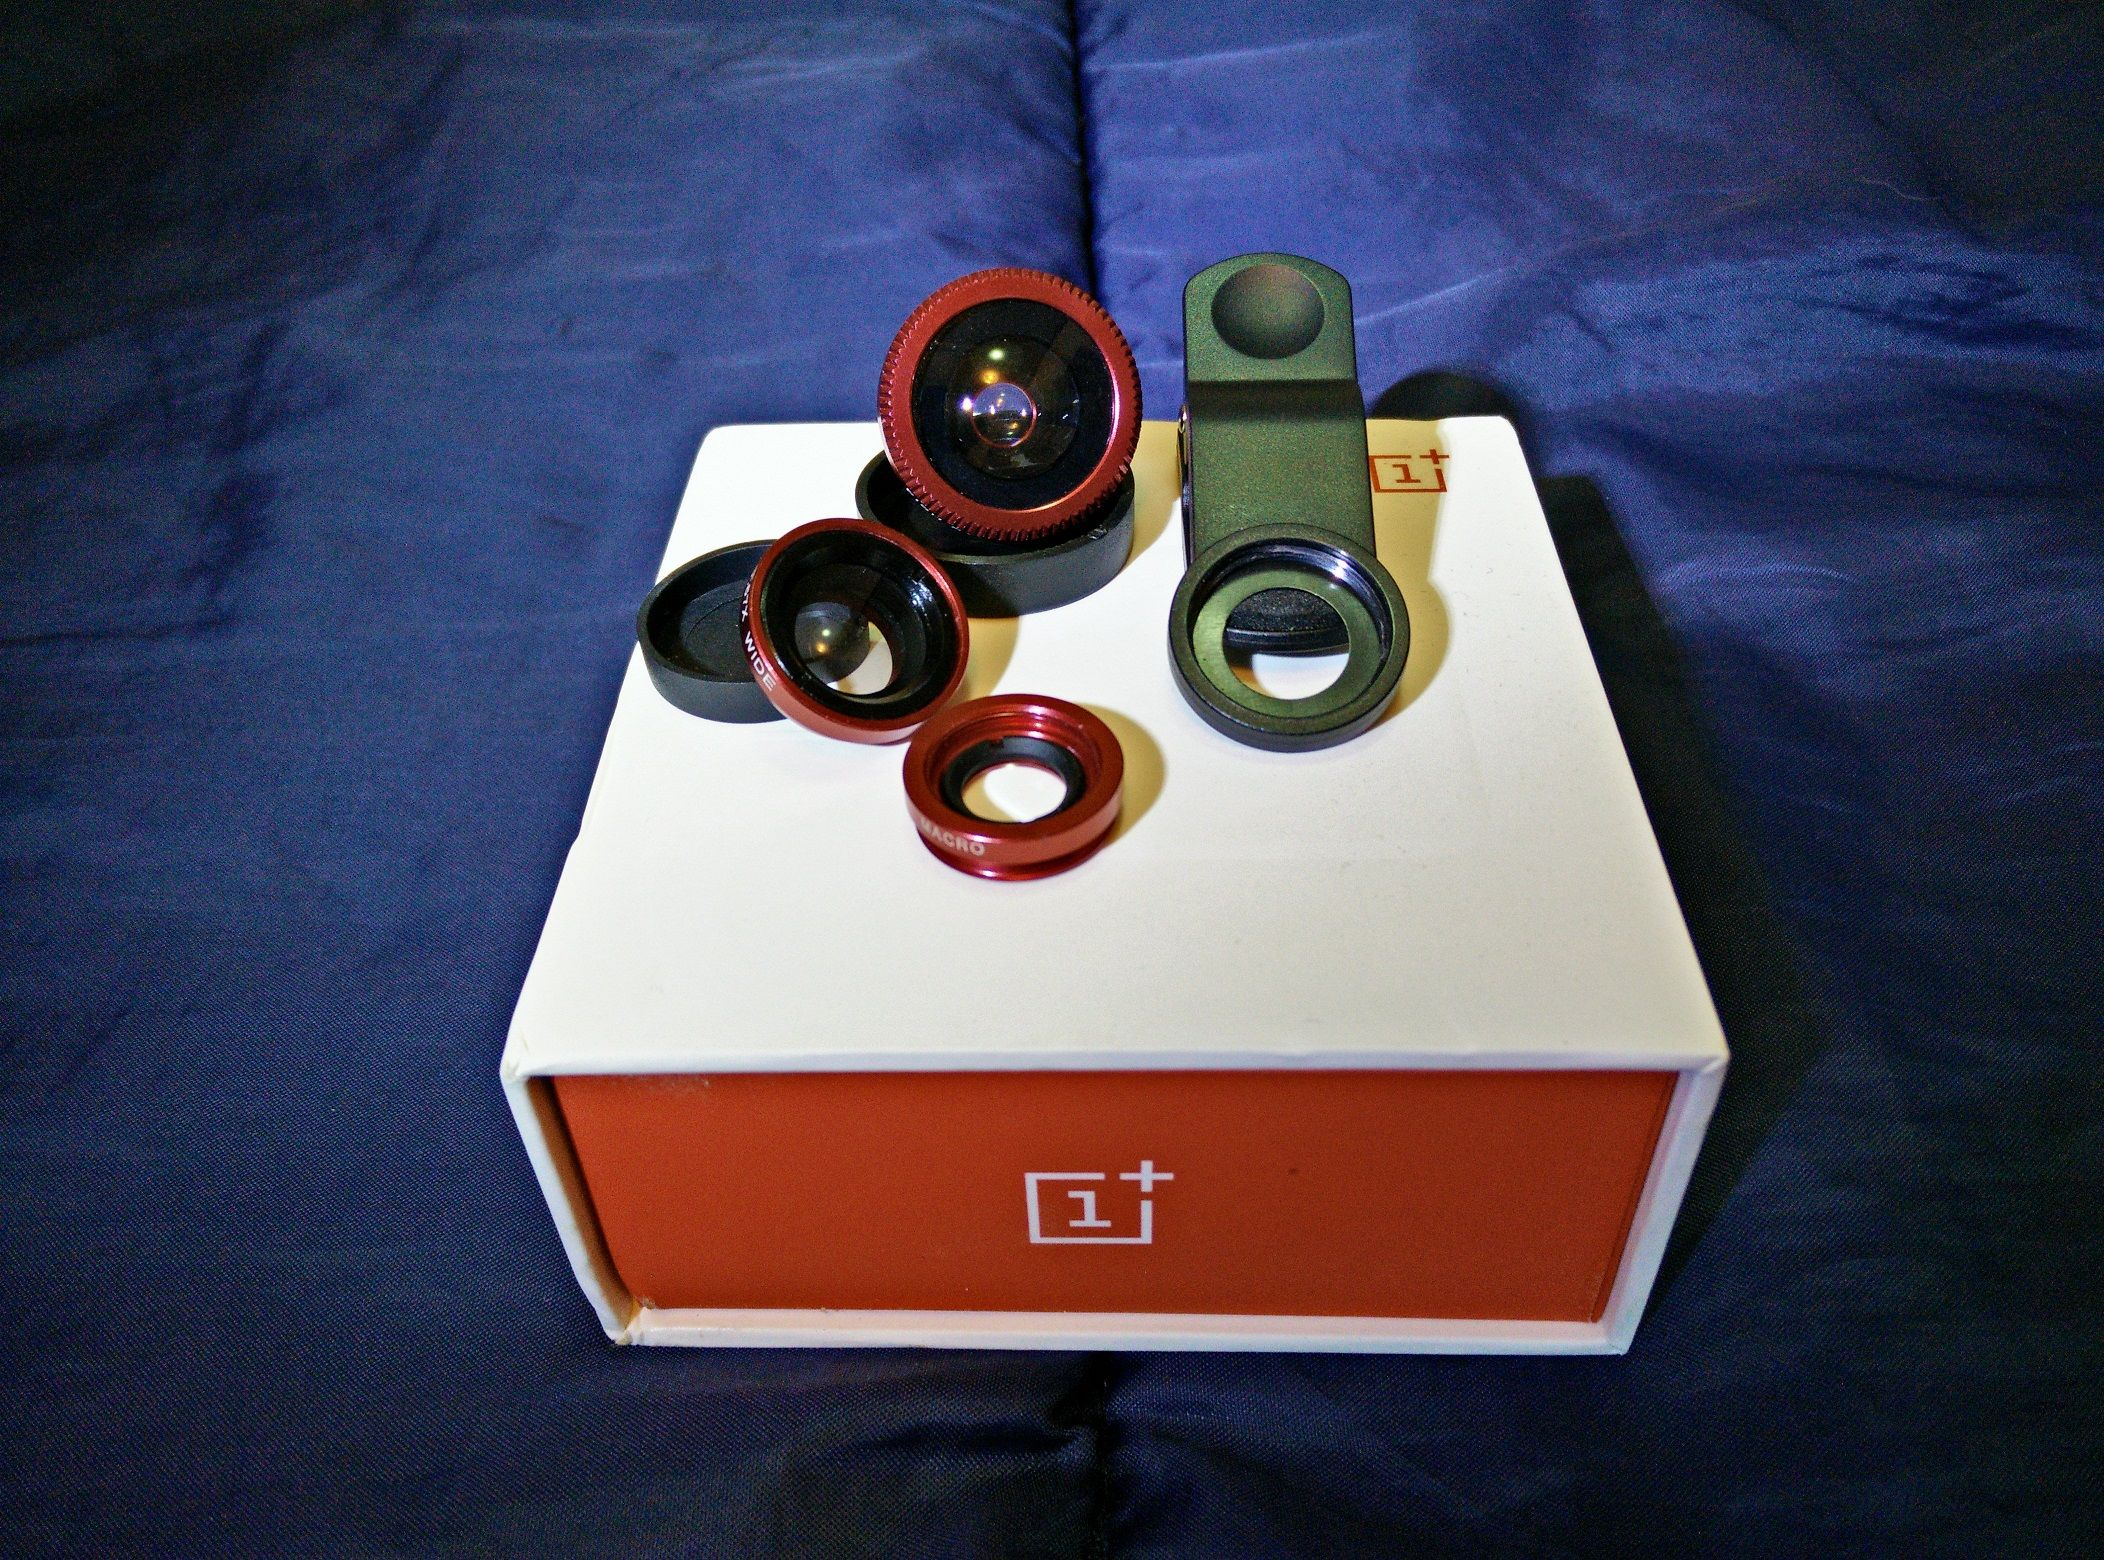 low priced 38148 40925 3 in 1 clip on lens kit - OnePlus Community